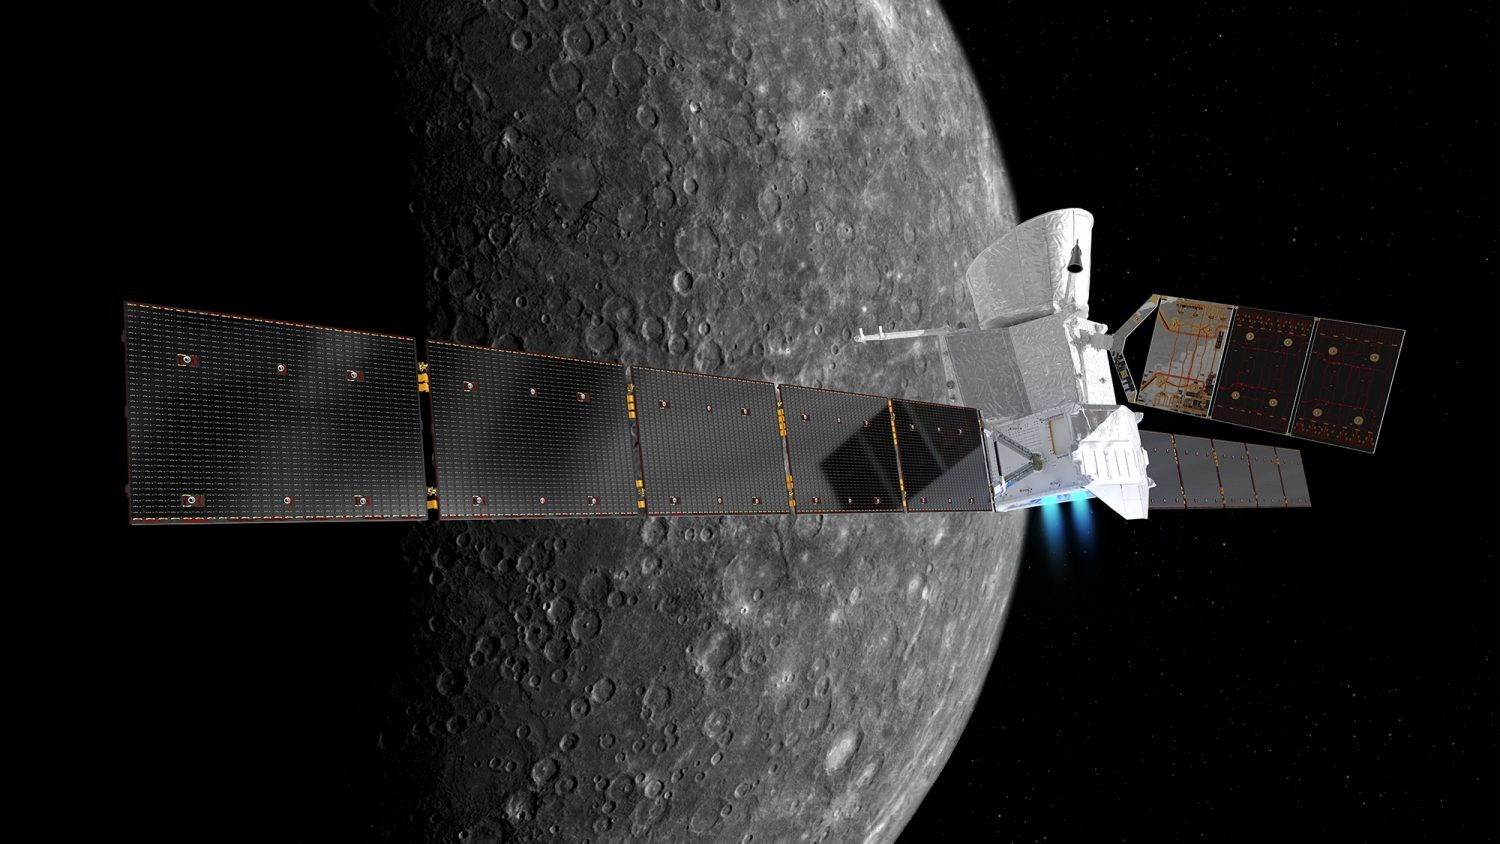 Bepi Columbo is a joint mission between the European and Japanese Space Agency to investigate Mercury.